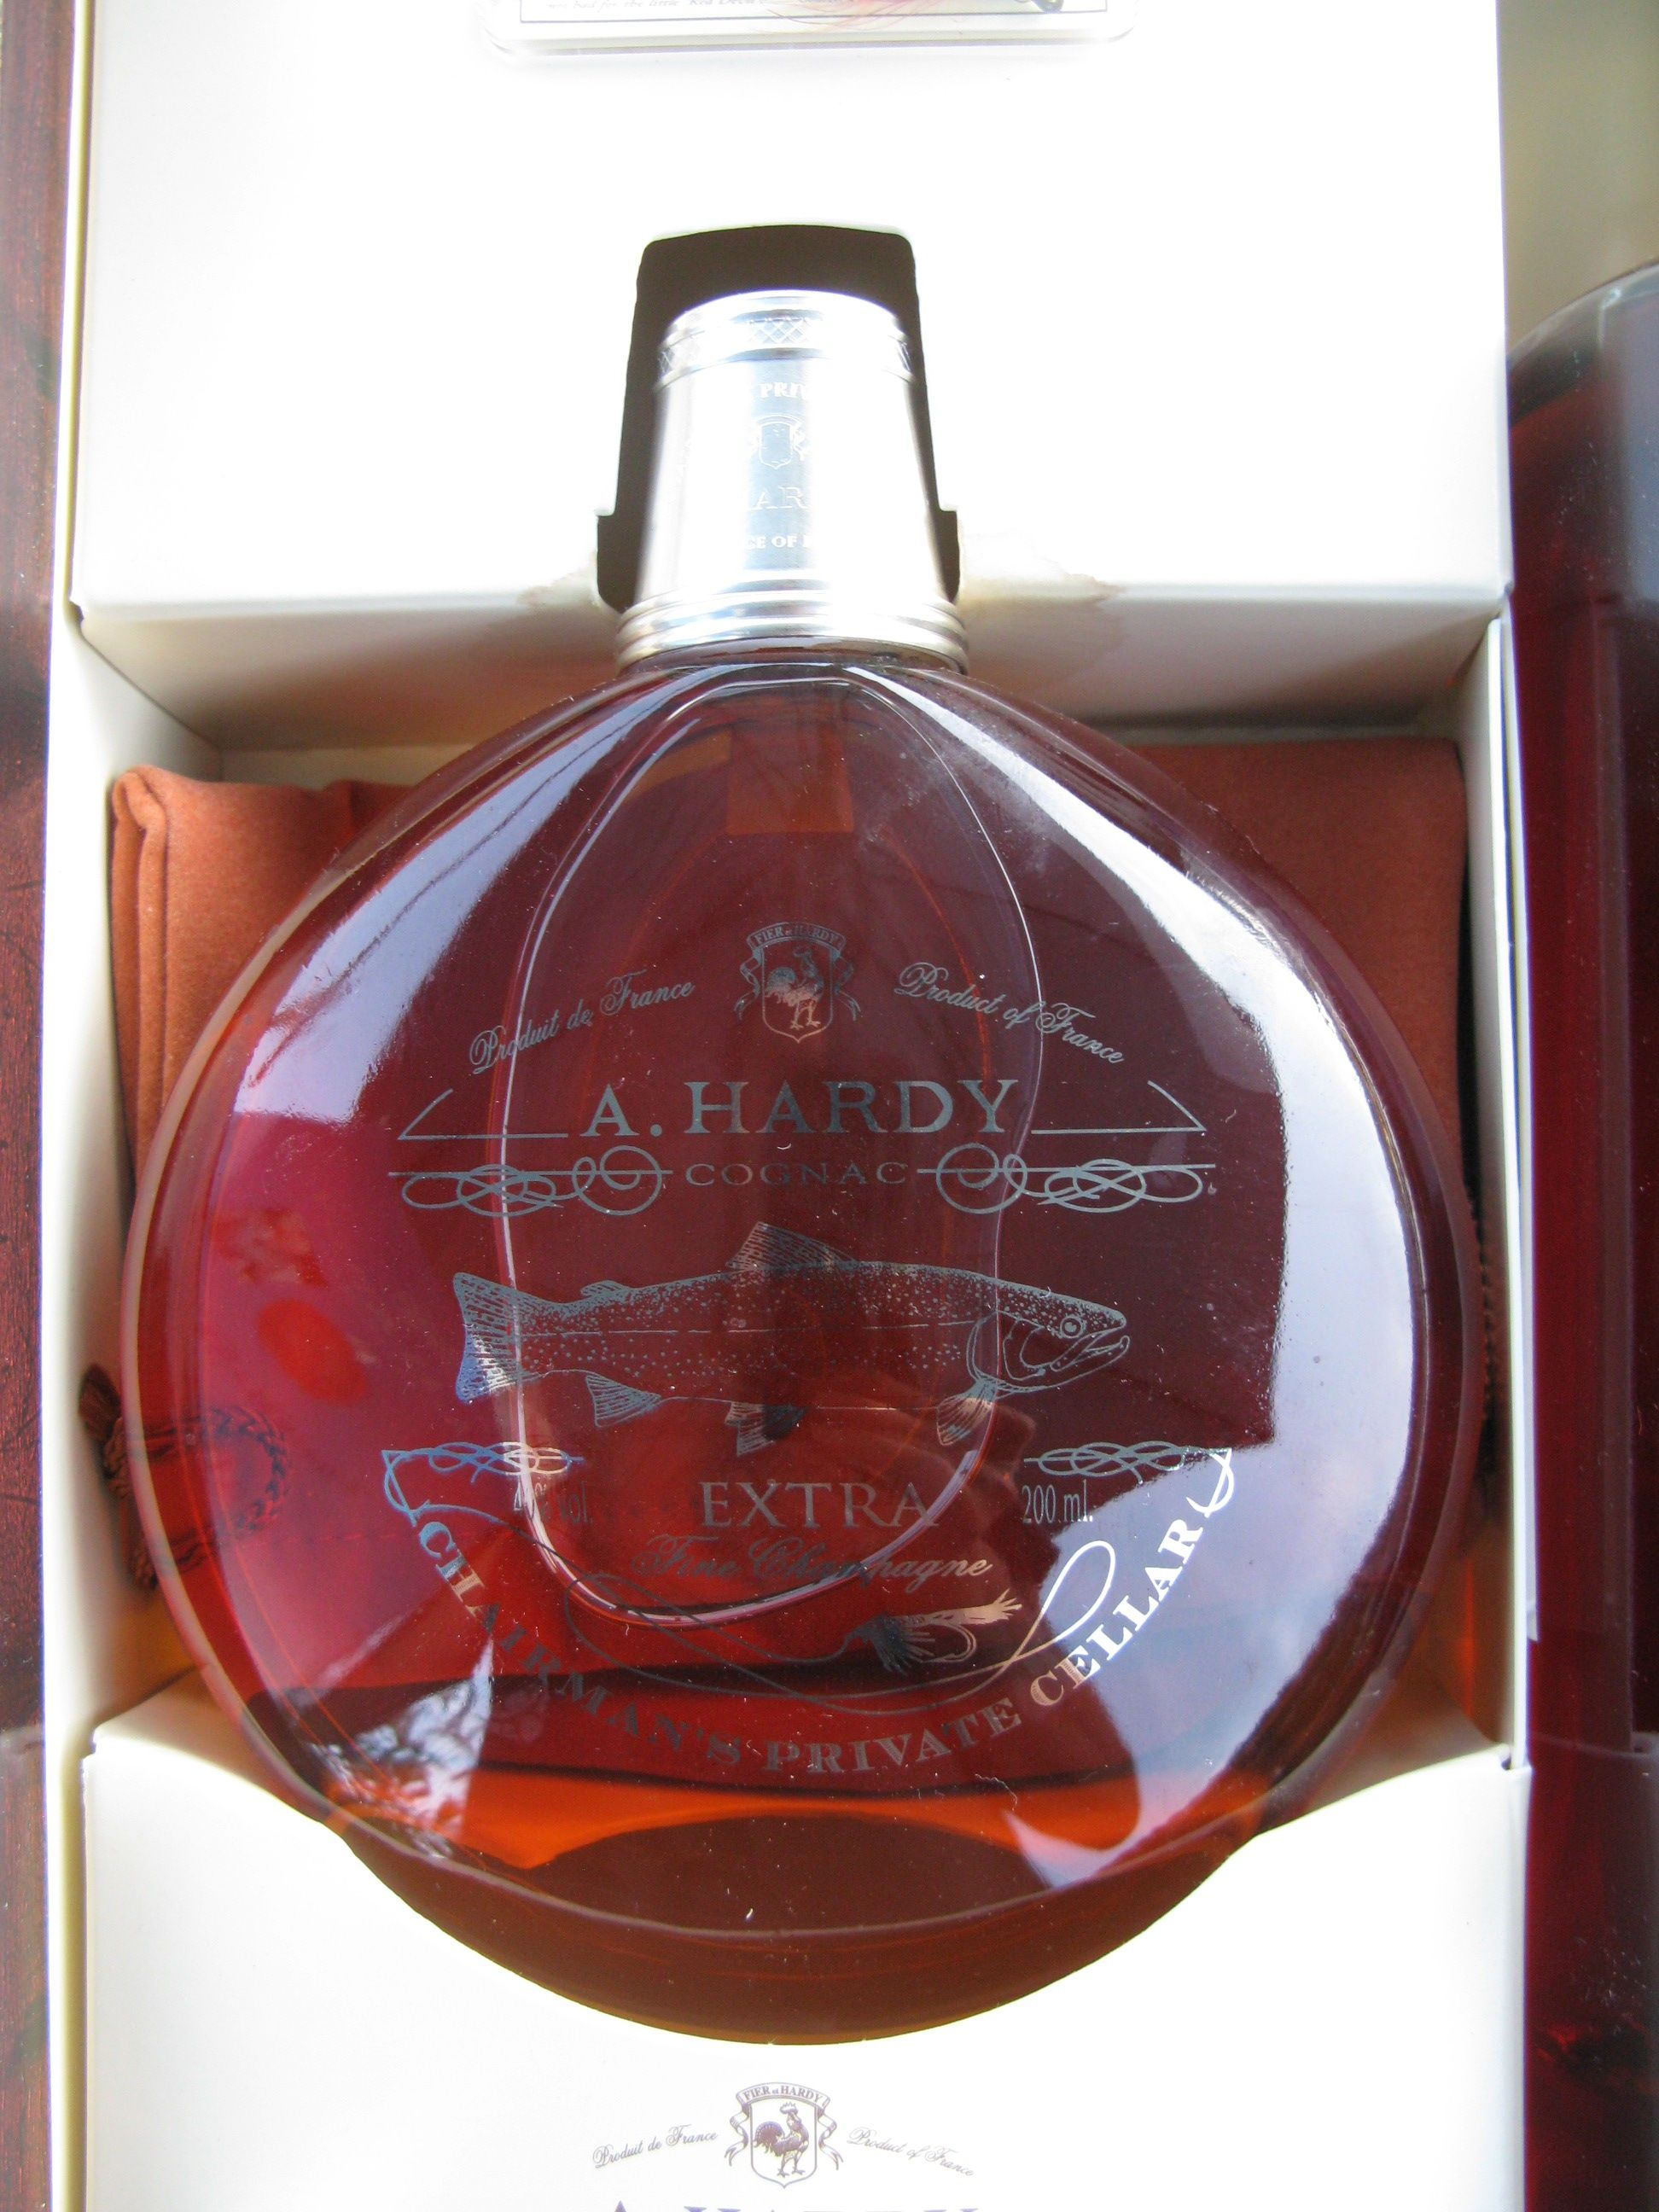 The Other Old Bottle Of Cognac Hardy Wine Drinks Cognac Wine And Spirits